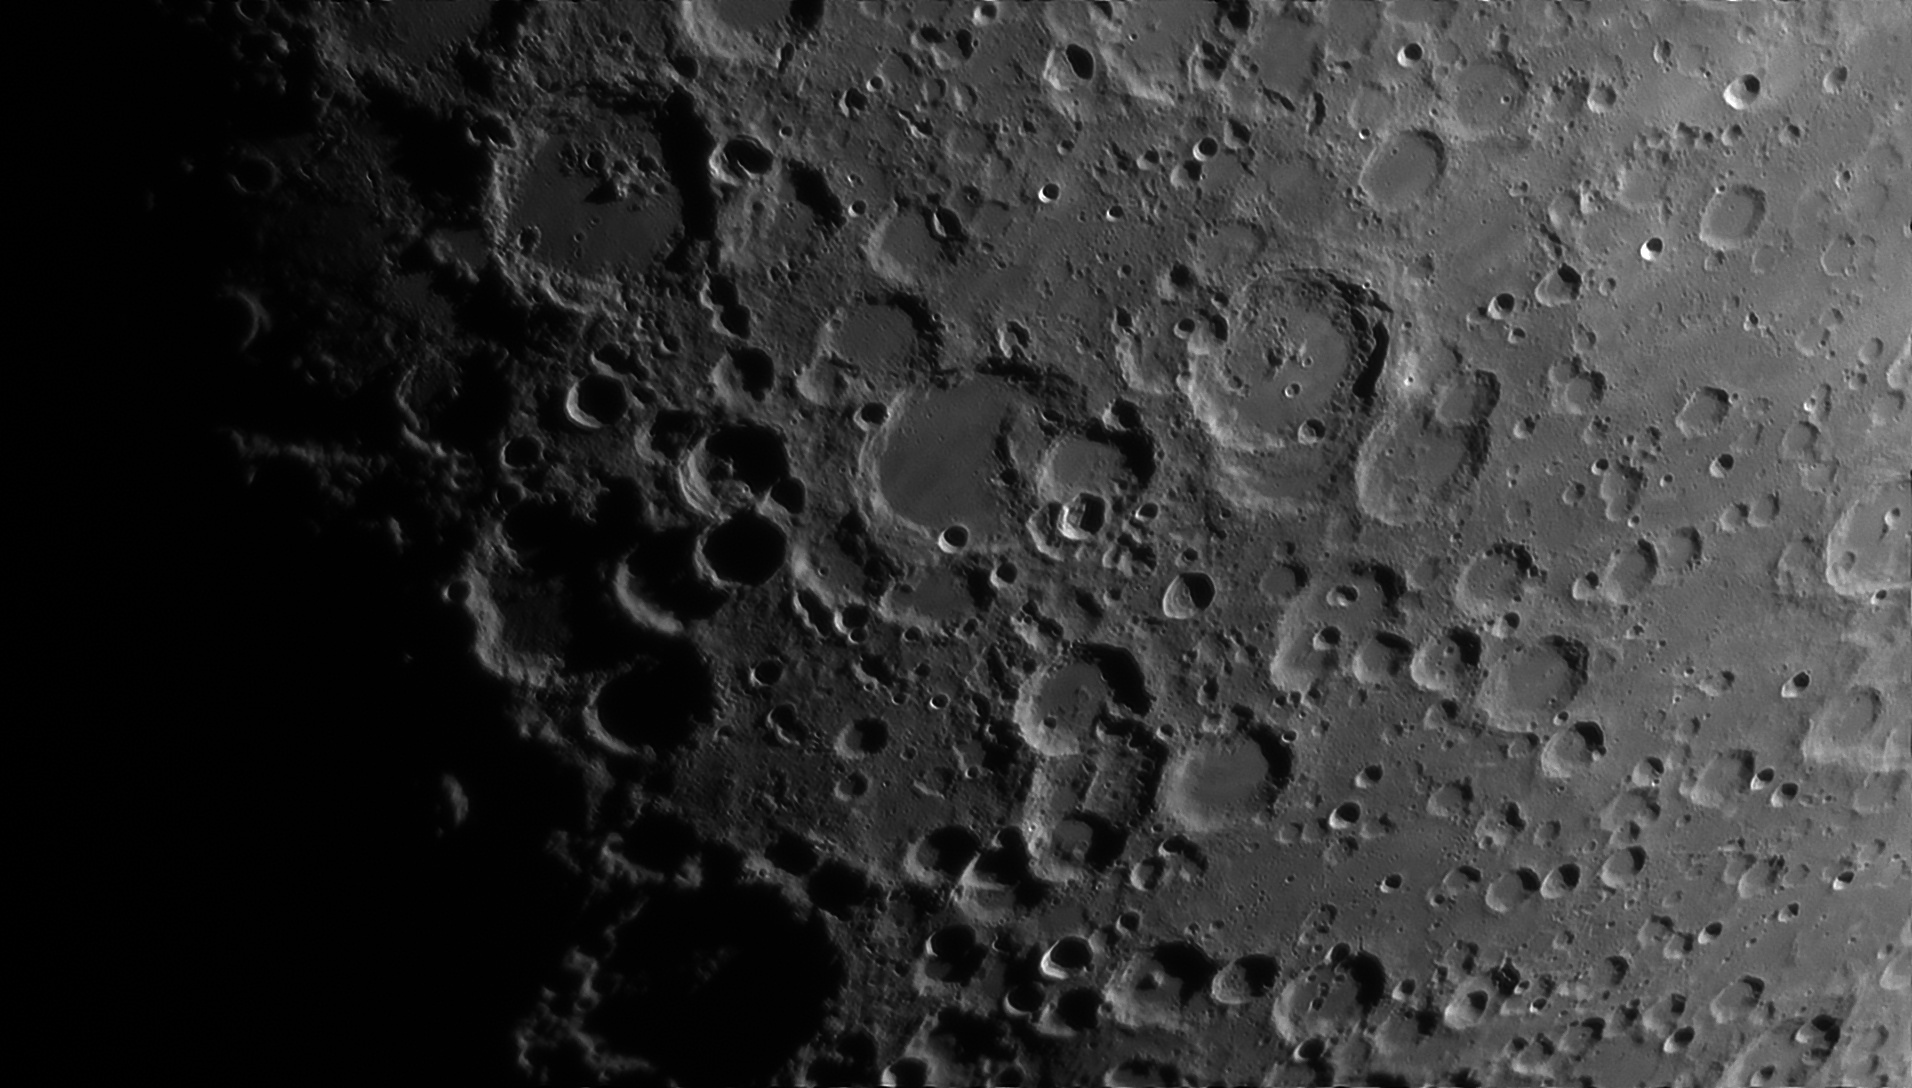 5d0185ccc3e9b_Moon_230305_100619_ZWOASI290MM_Rouge_23A_AS_P35_lapl4_ap731ast.jpg.20859cb91ccdcf0b512a5f09b2fb51cd.jpg